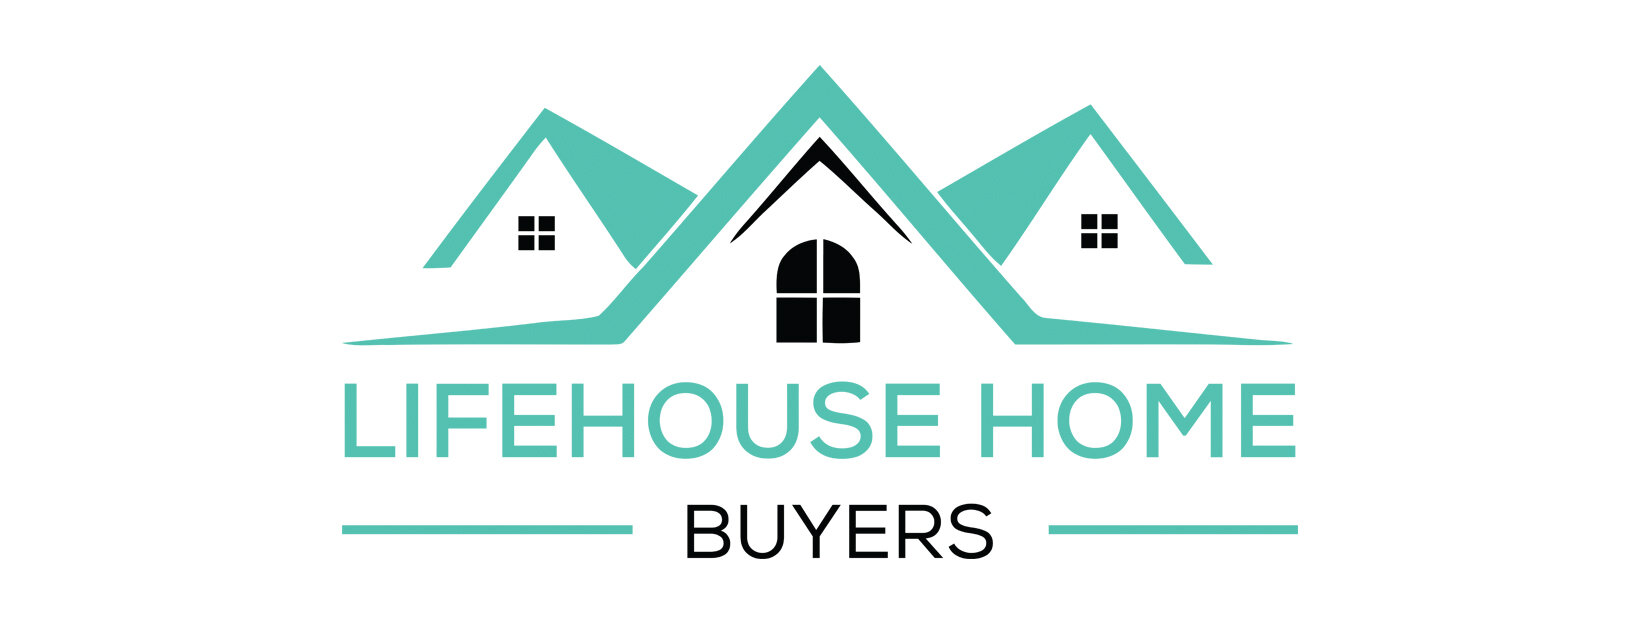 Lifehouse Home Buyers logo